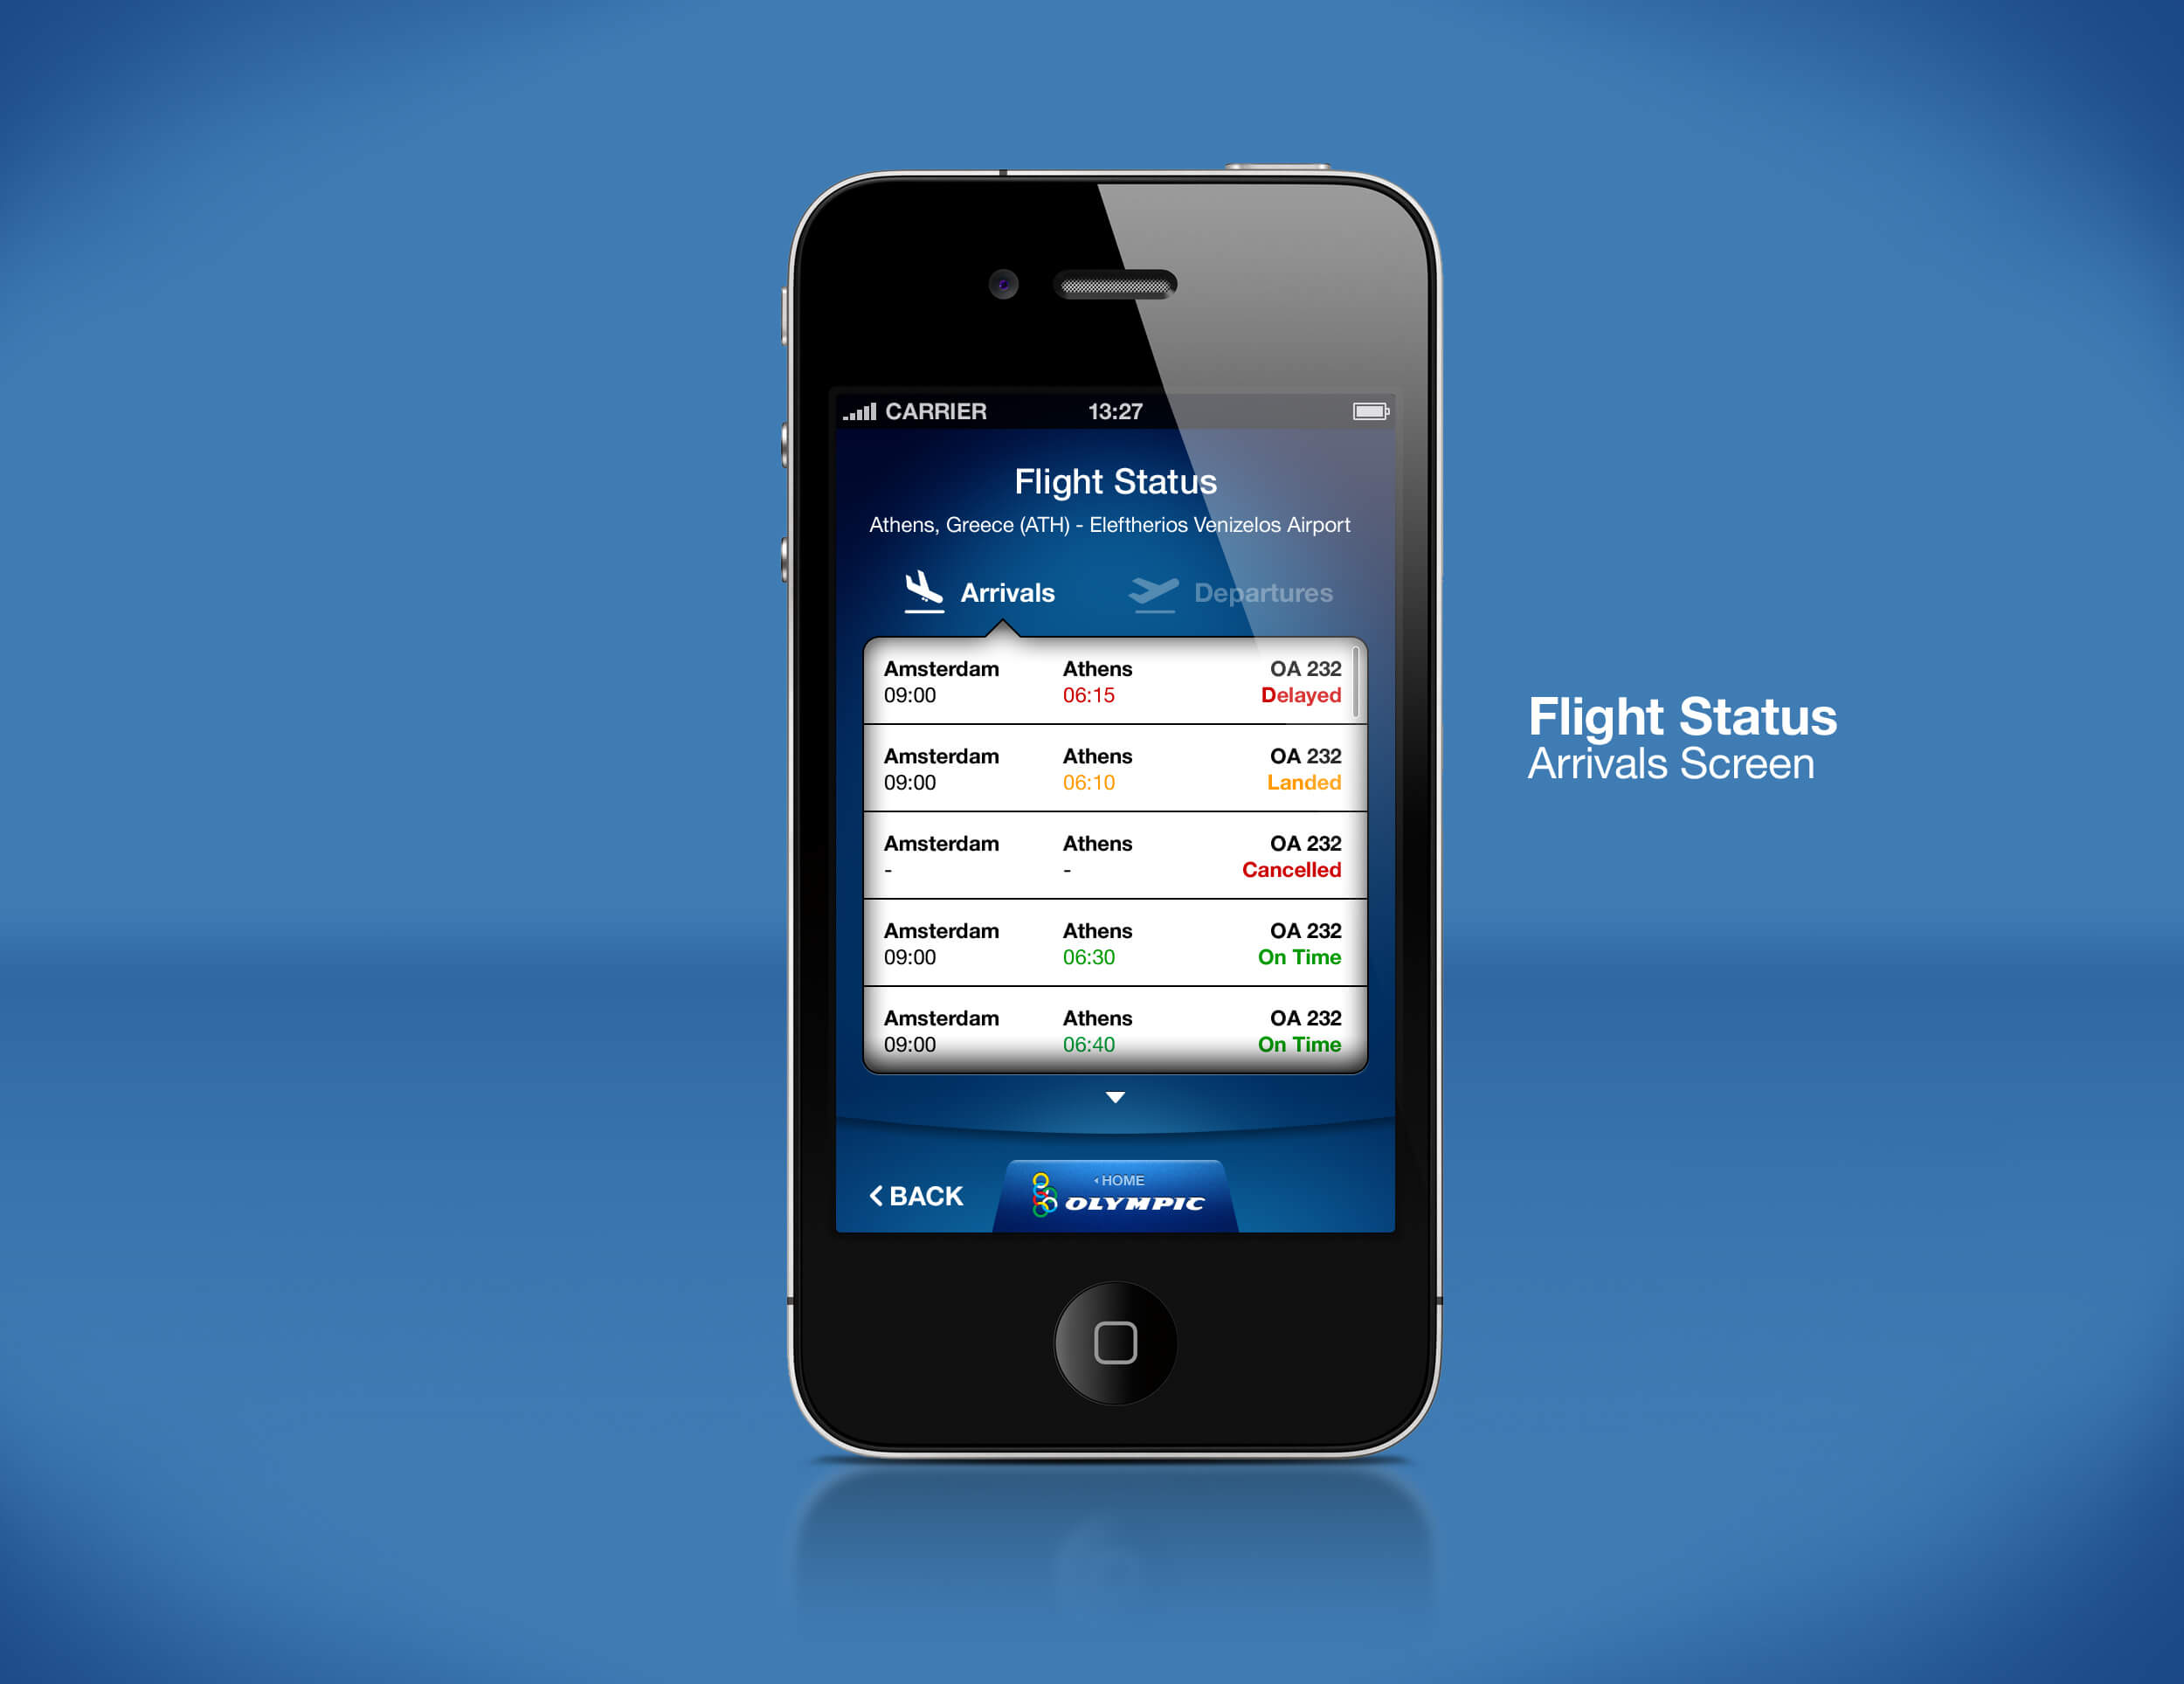 Airline Mobile App Flight Status